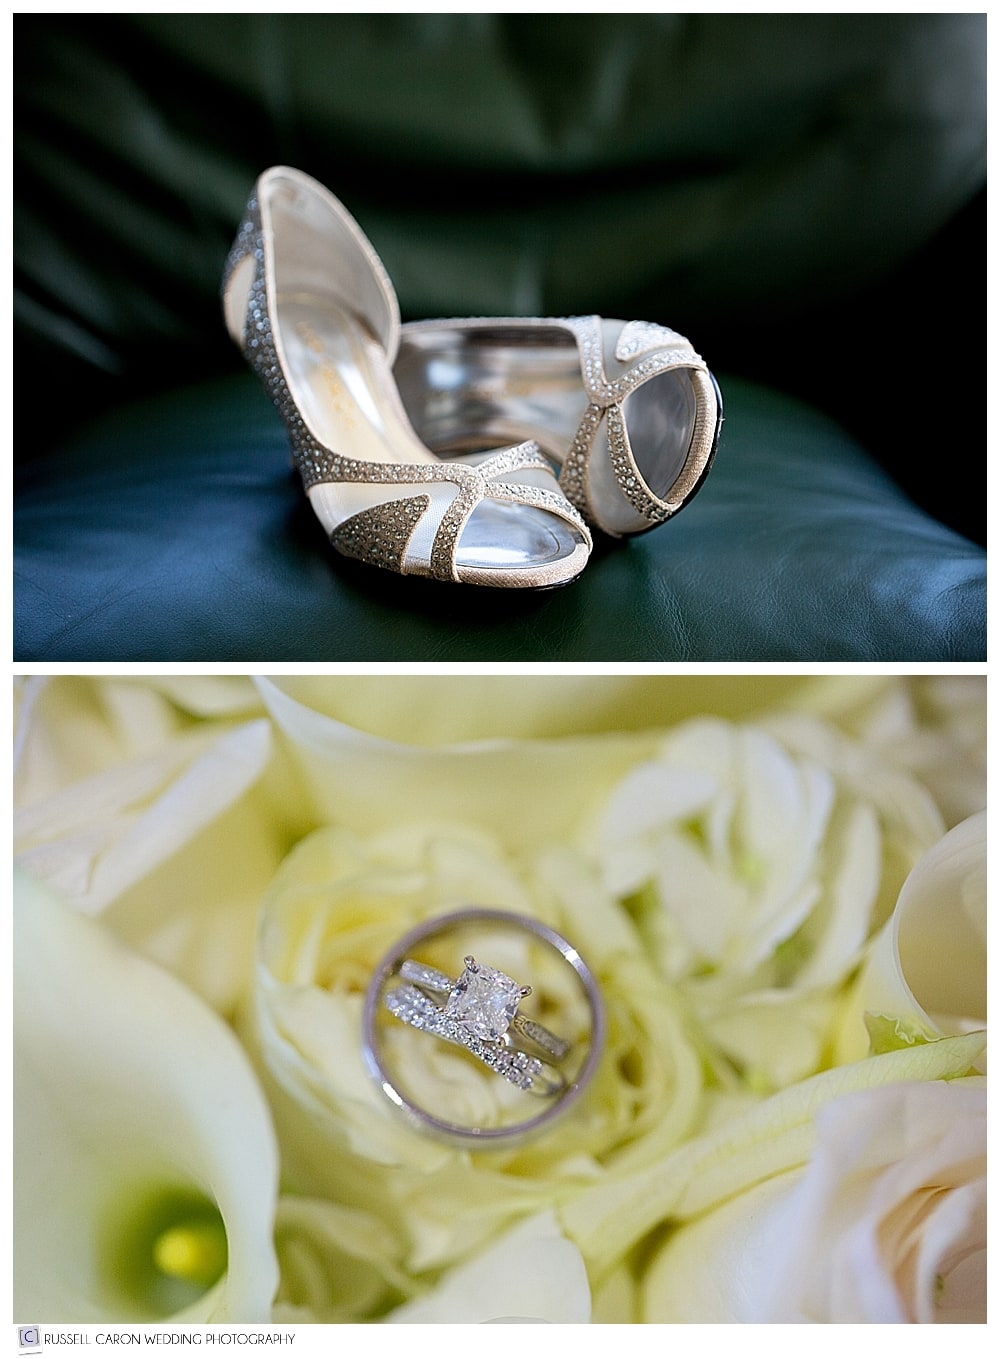 wedding day details, bridal shoes and wedding rings